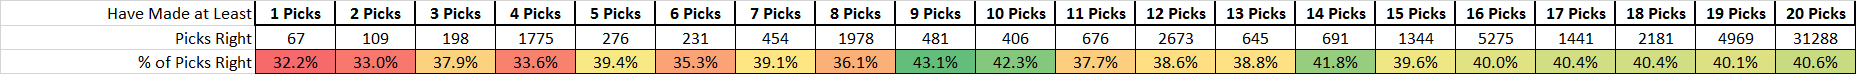 Week 5 Picks Right by Count